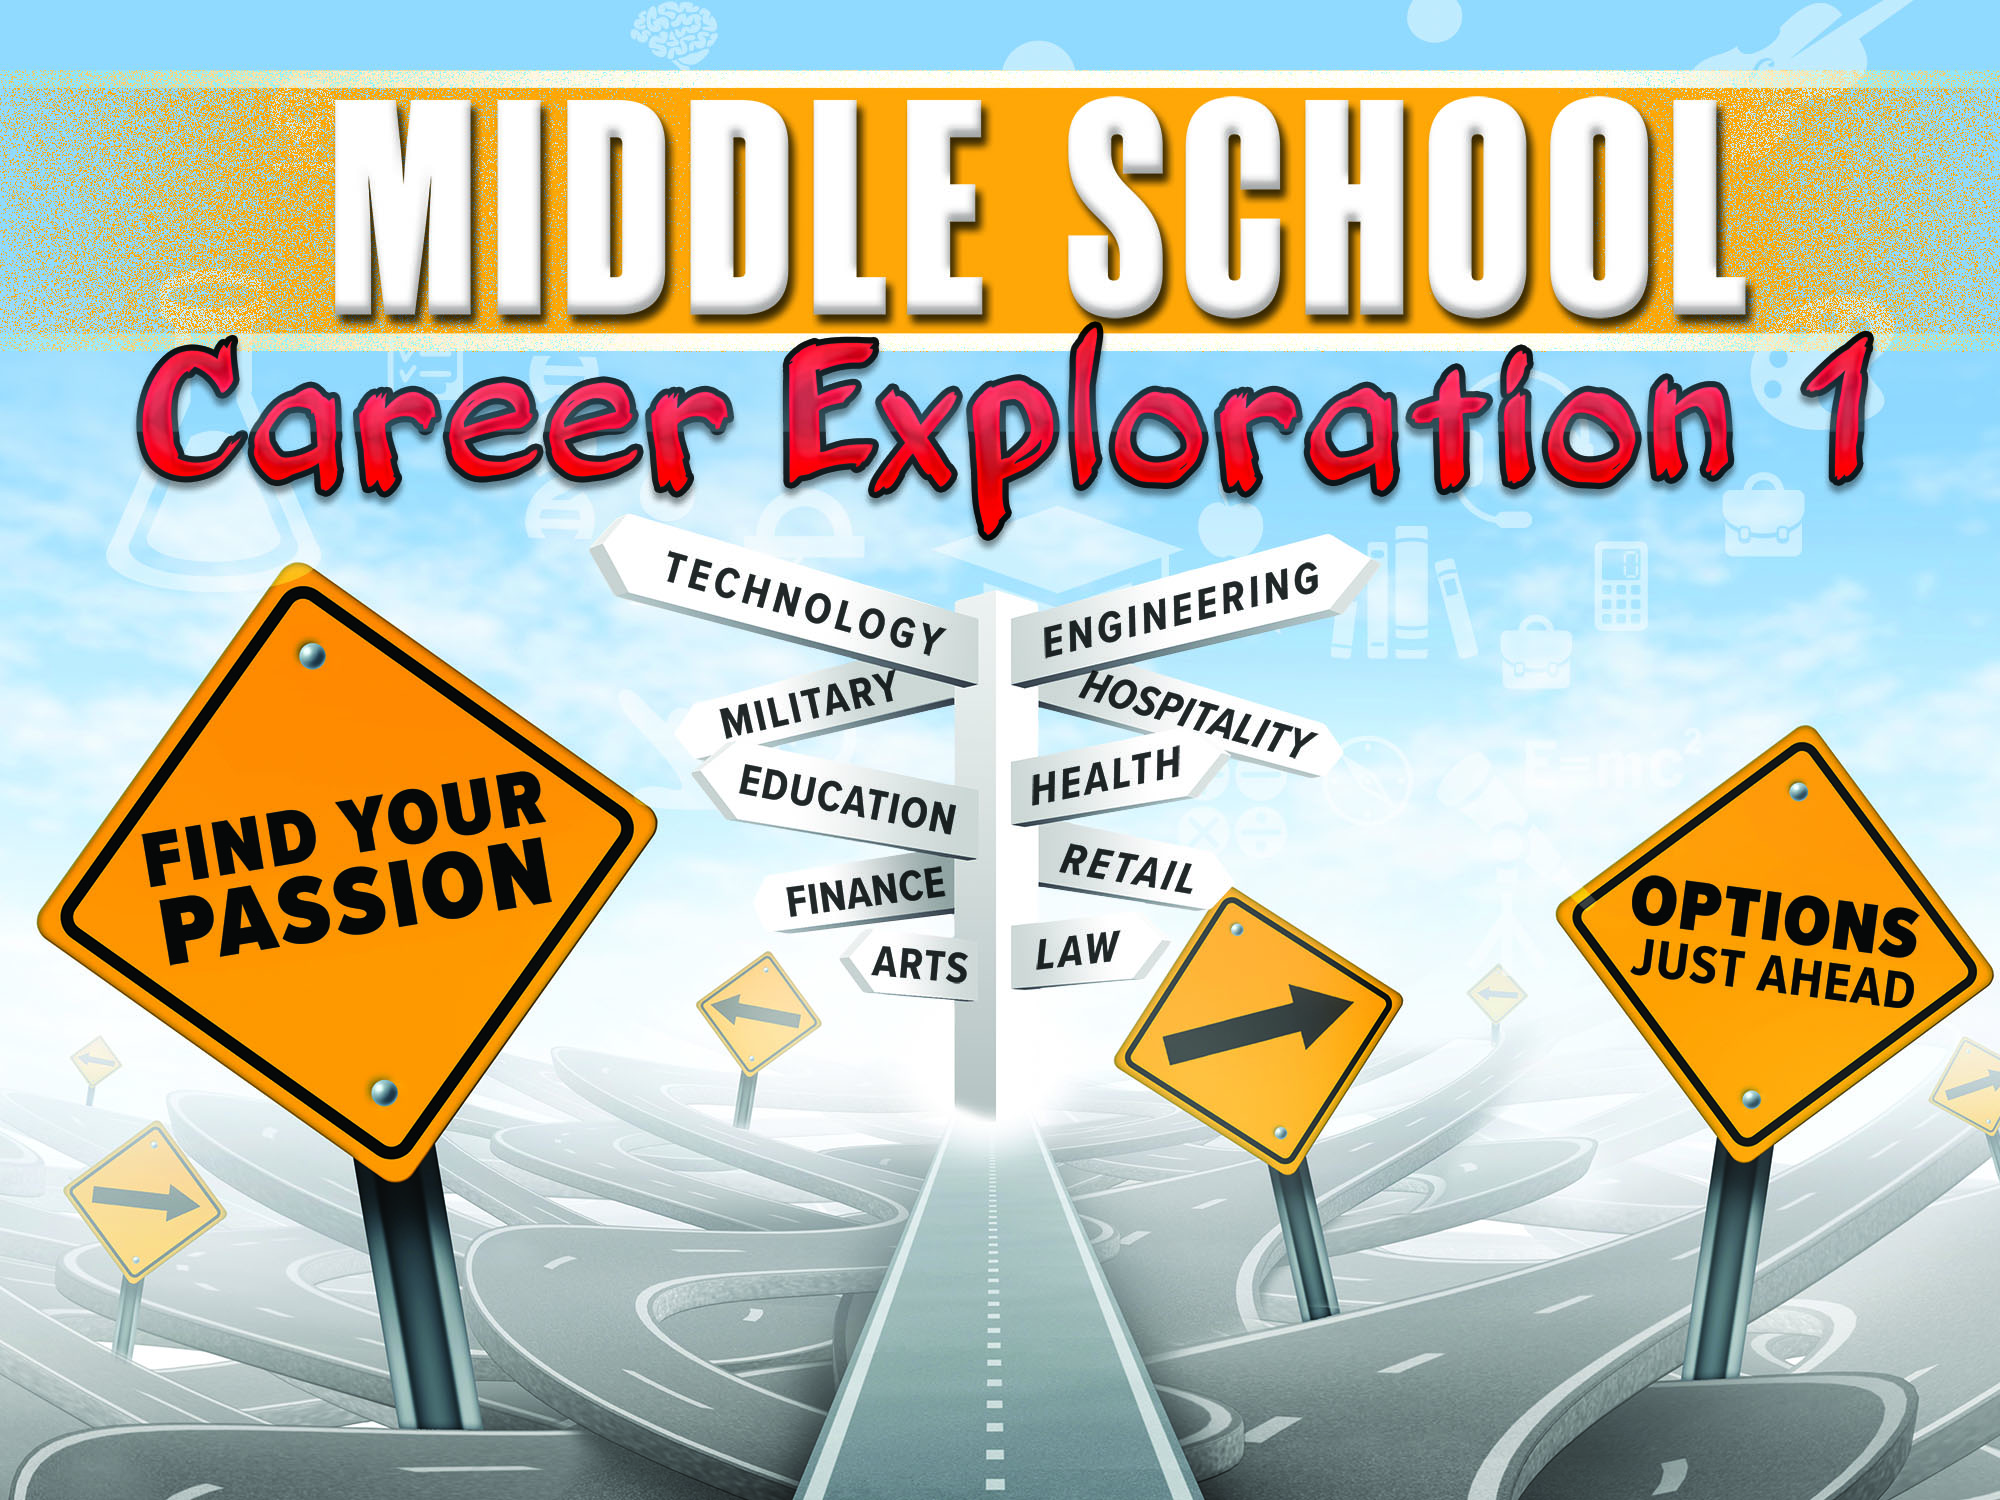 Middle School Career Exploration 1 Charting Your Path